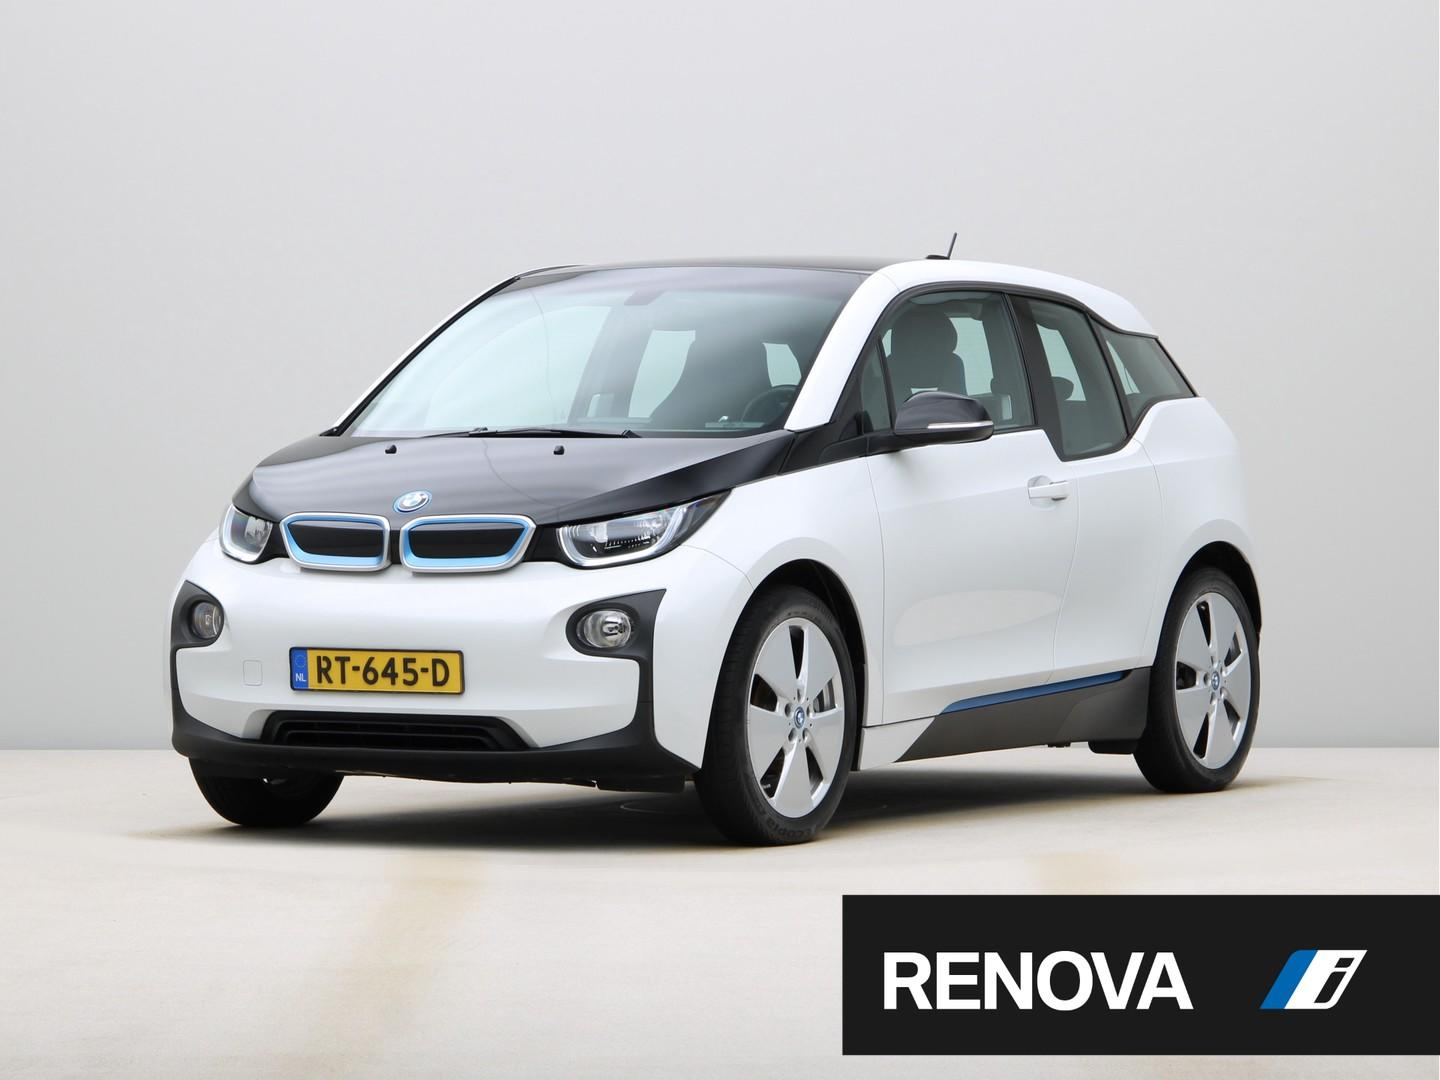 Bmw I3 Basis iperformance 22 kwh warmtepomp